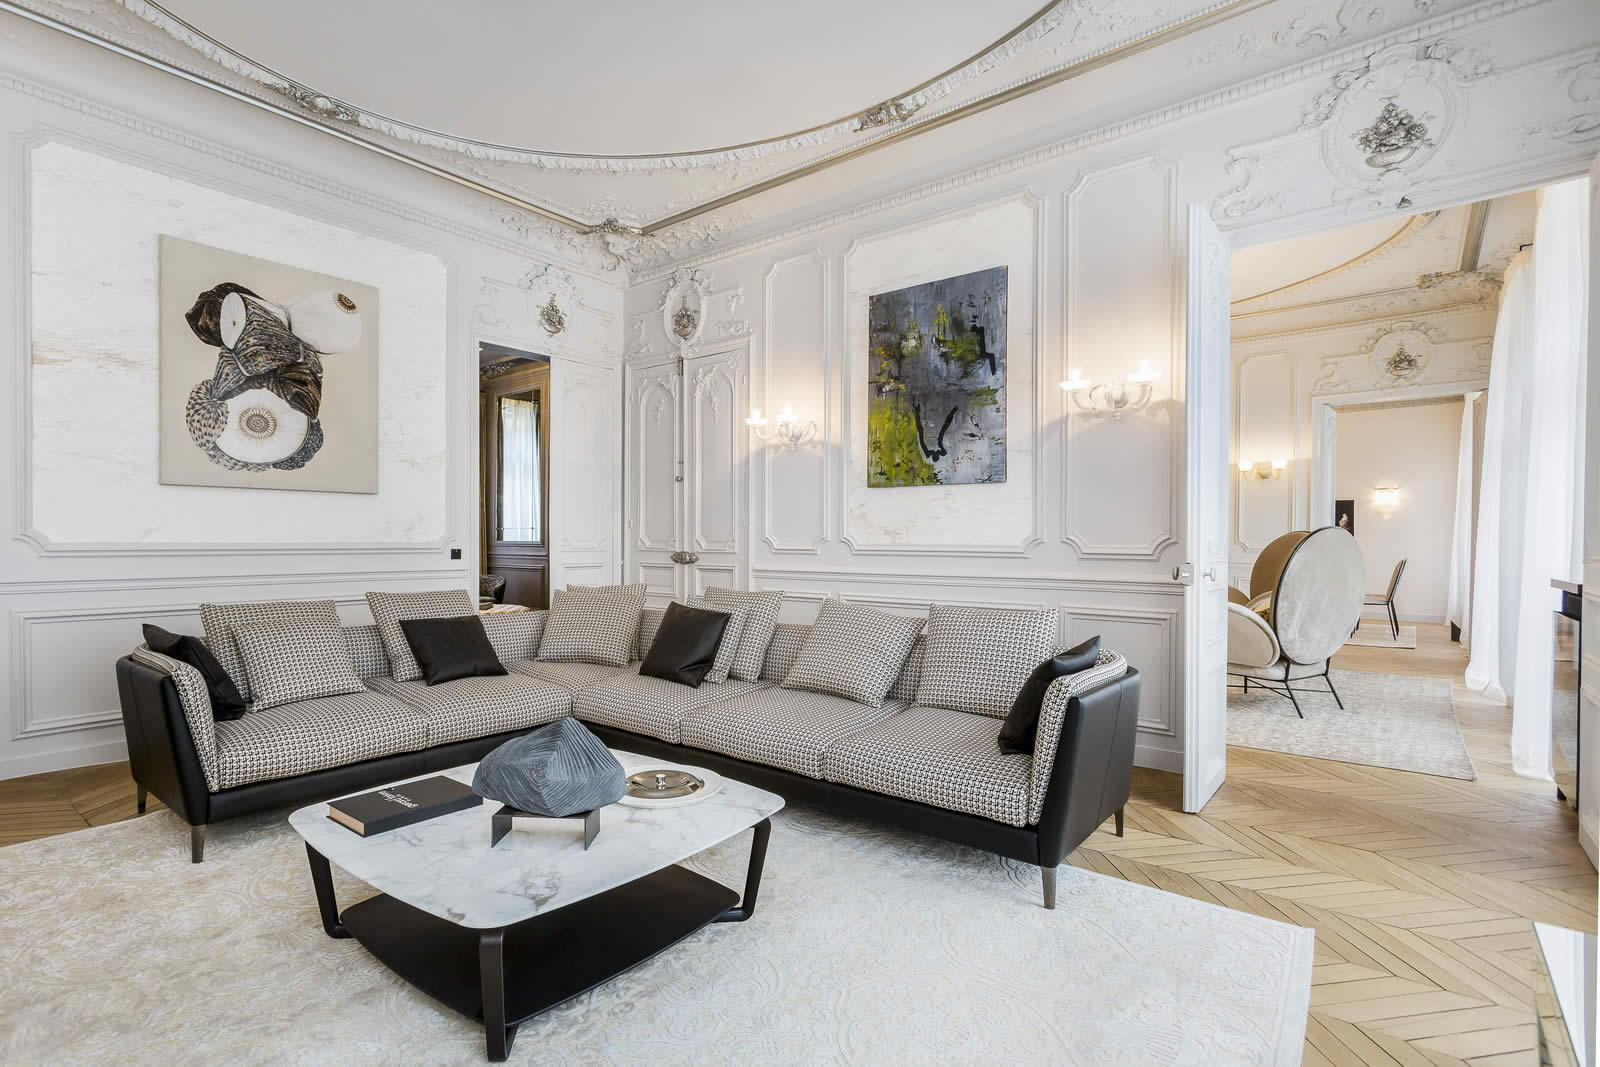 Beautiful Apartment of 2 bedrooms For Sale in the Golden Triangle of Paris